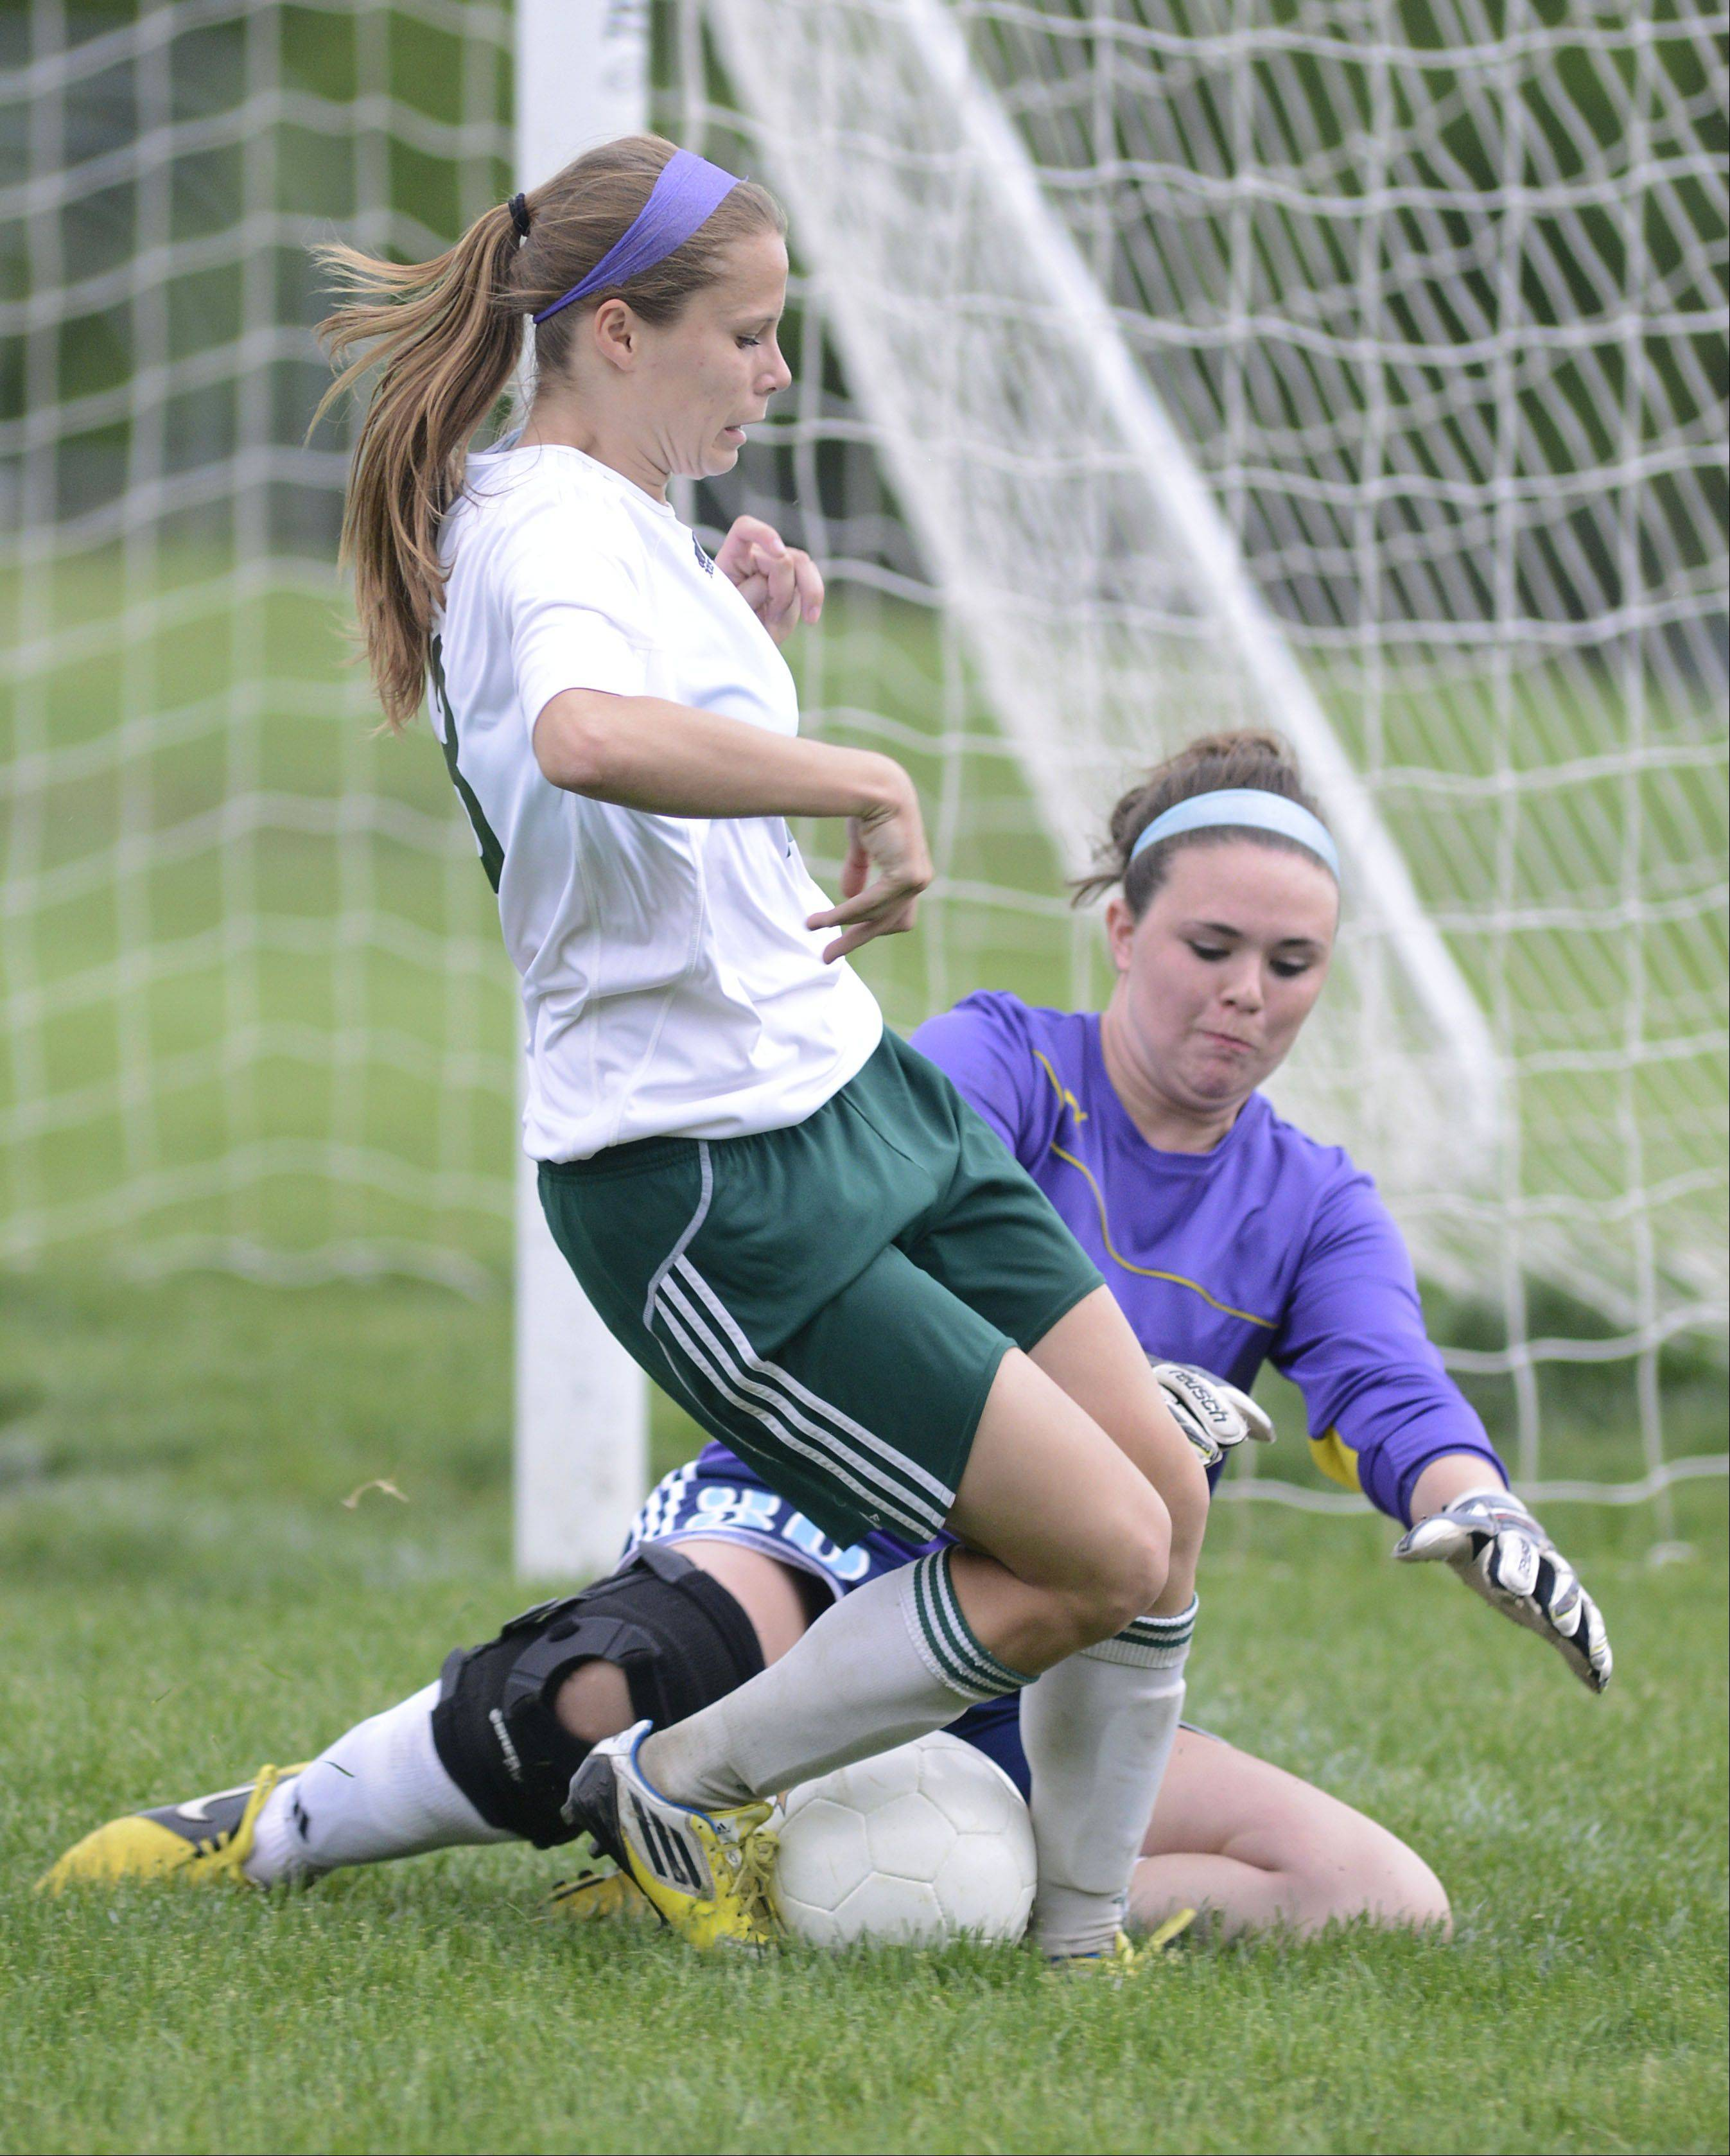 Willows Academy goalie Bethy Hunt attempts to capture the ball as St. Edward's Meagan Kearney tries to redirect it back toward the front of the net in the first half of the Class 1A girls soccer sectional title game on Friday, May 17.